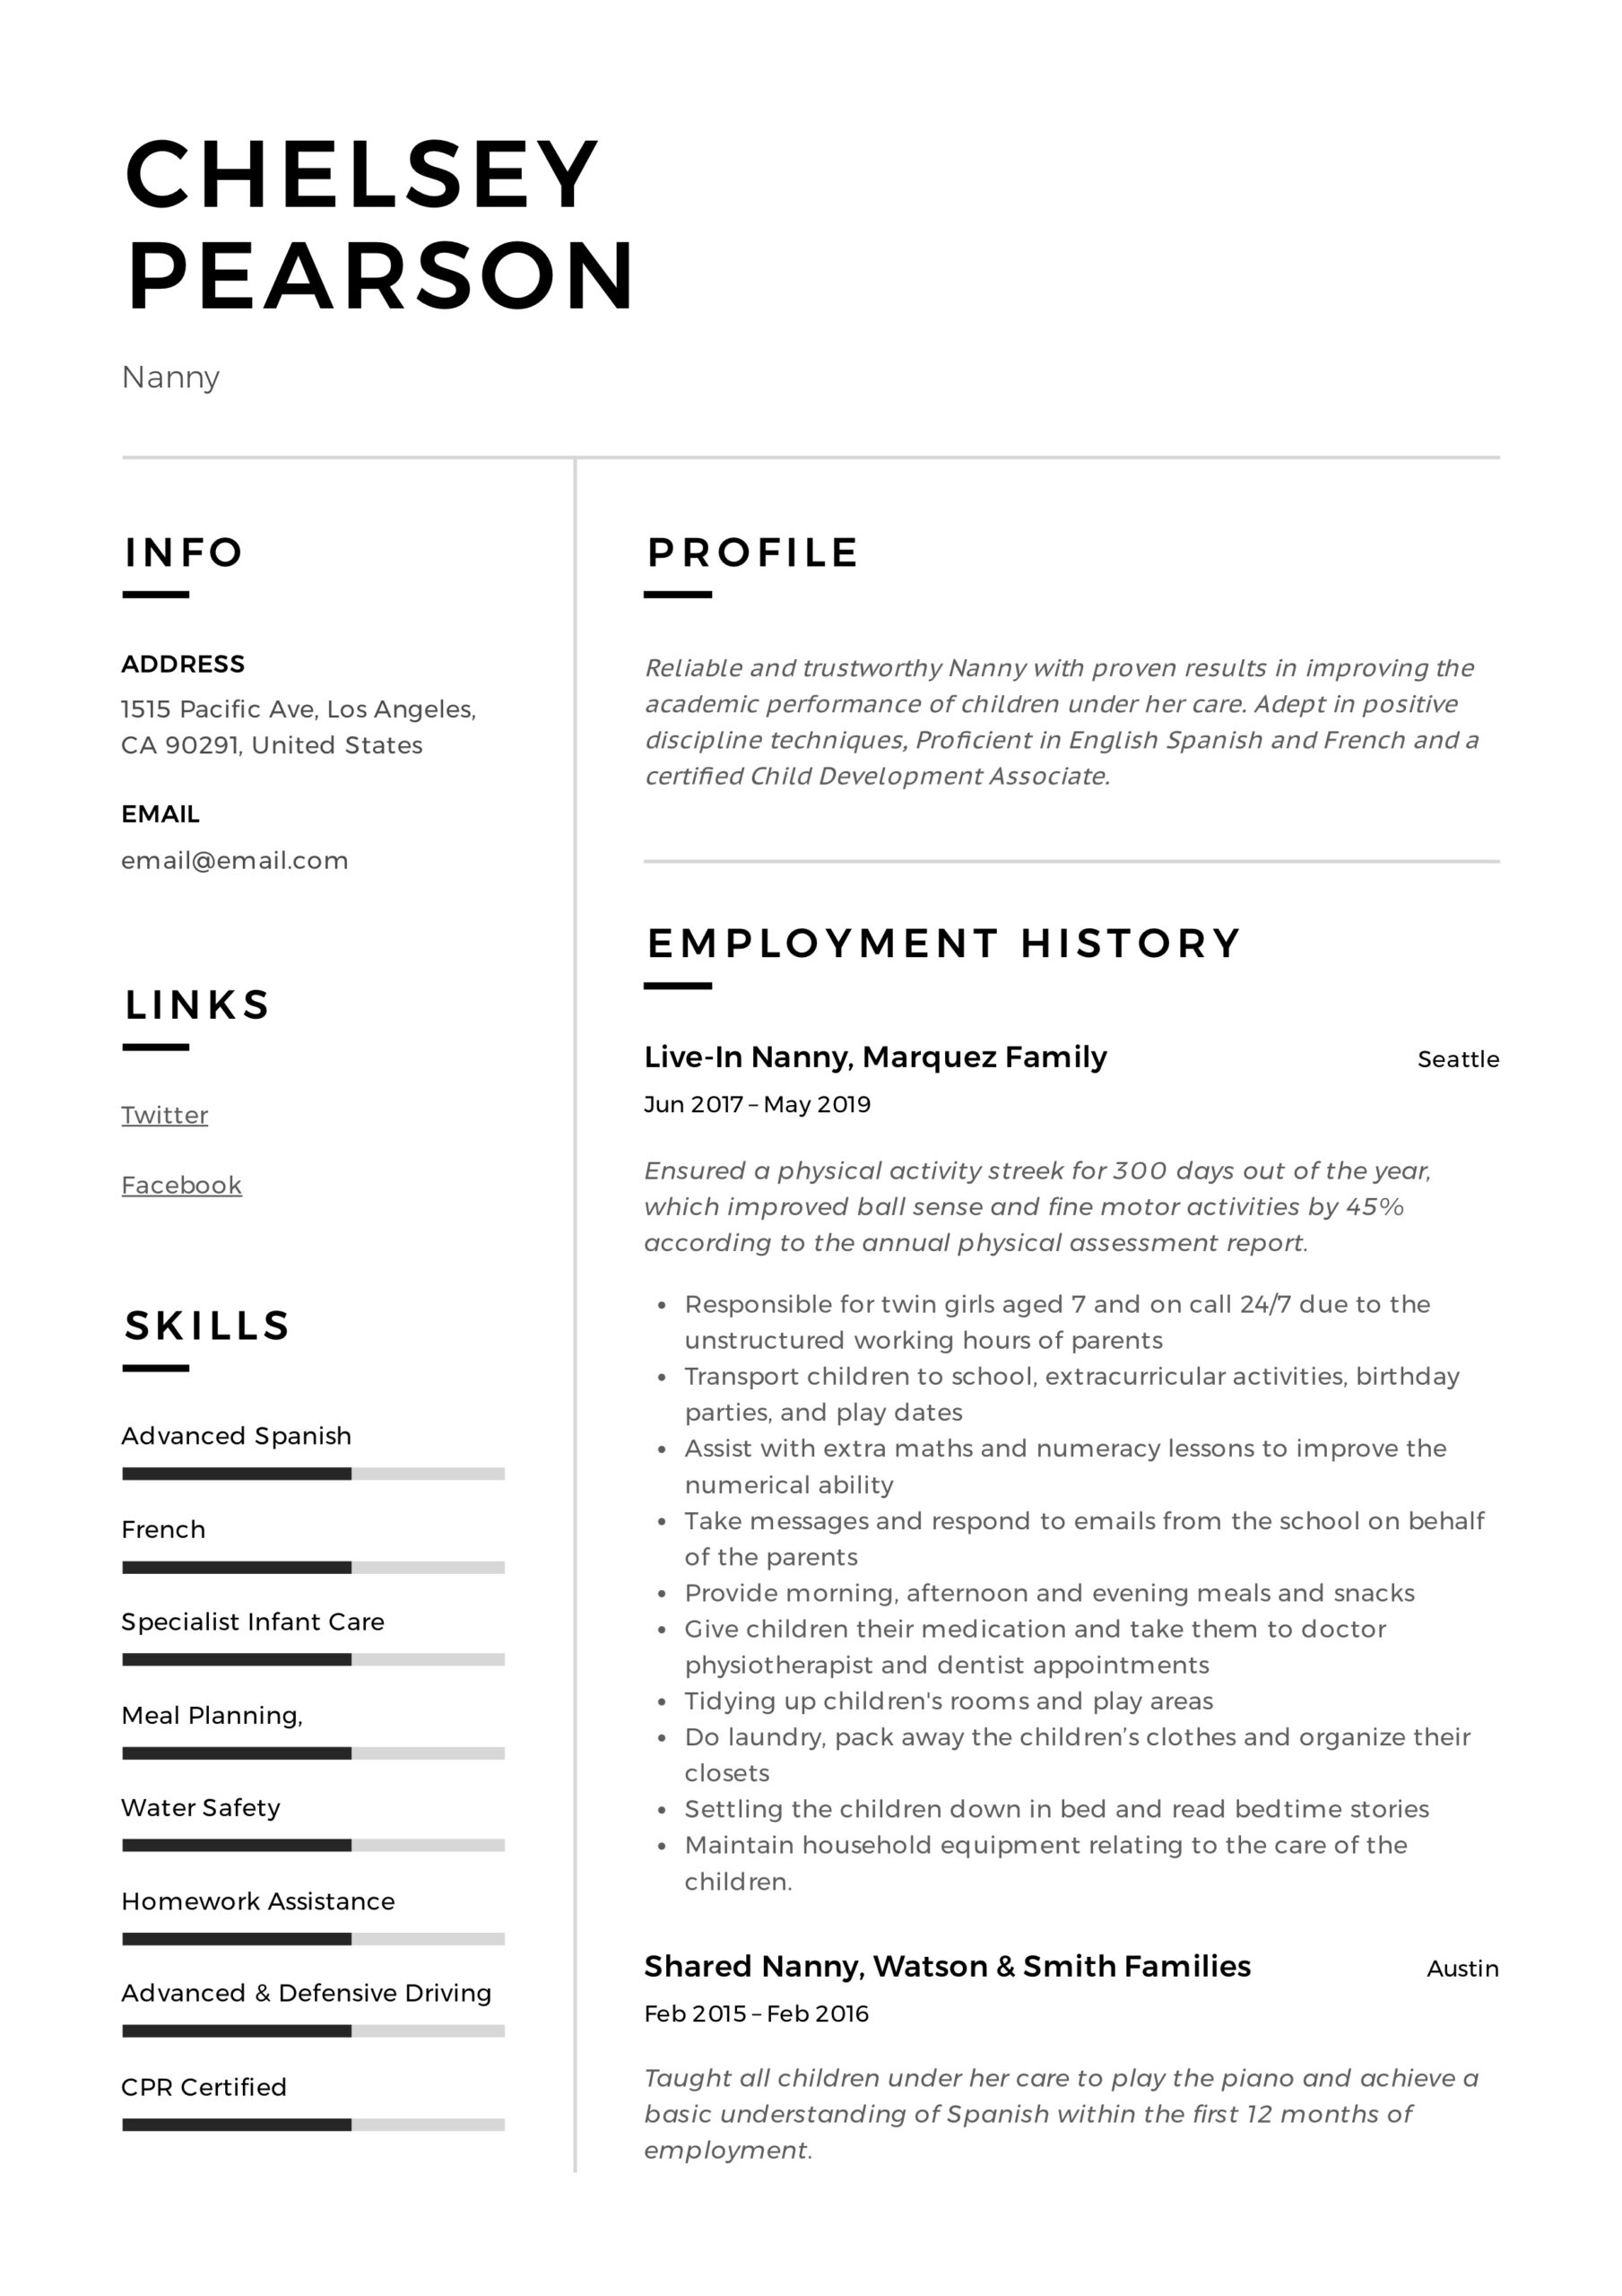 nanny resume writing guide template samples pdf description for on eit opt bank deloitte Resume Description For Nanny On Resume